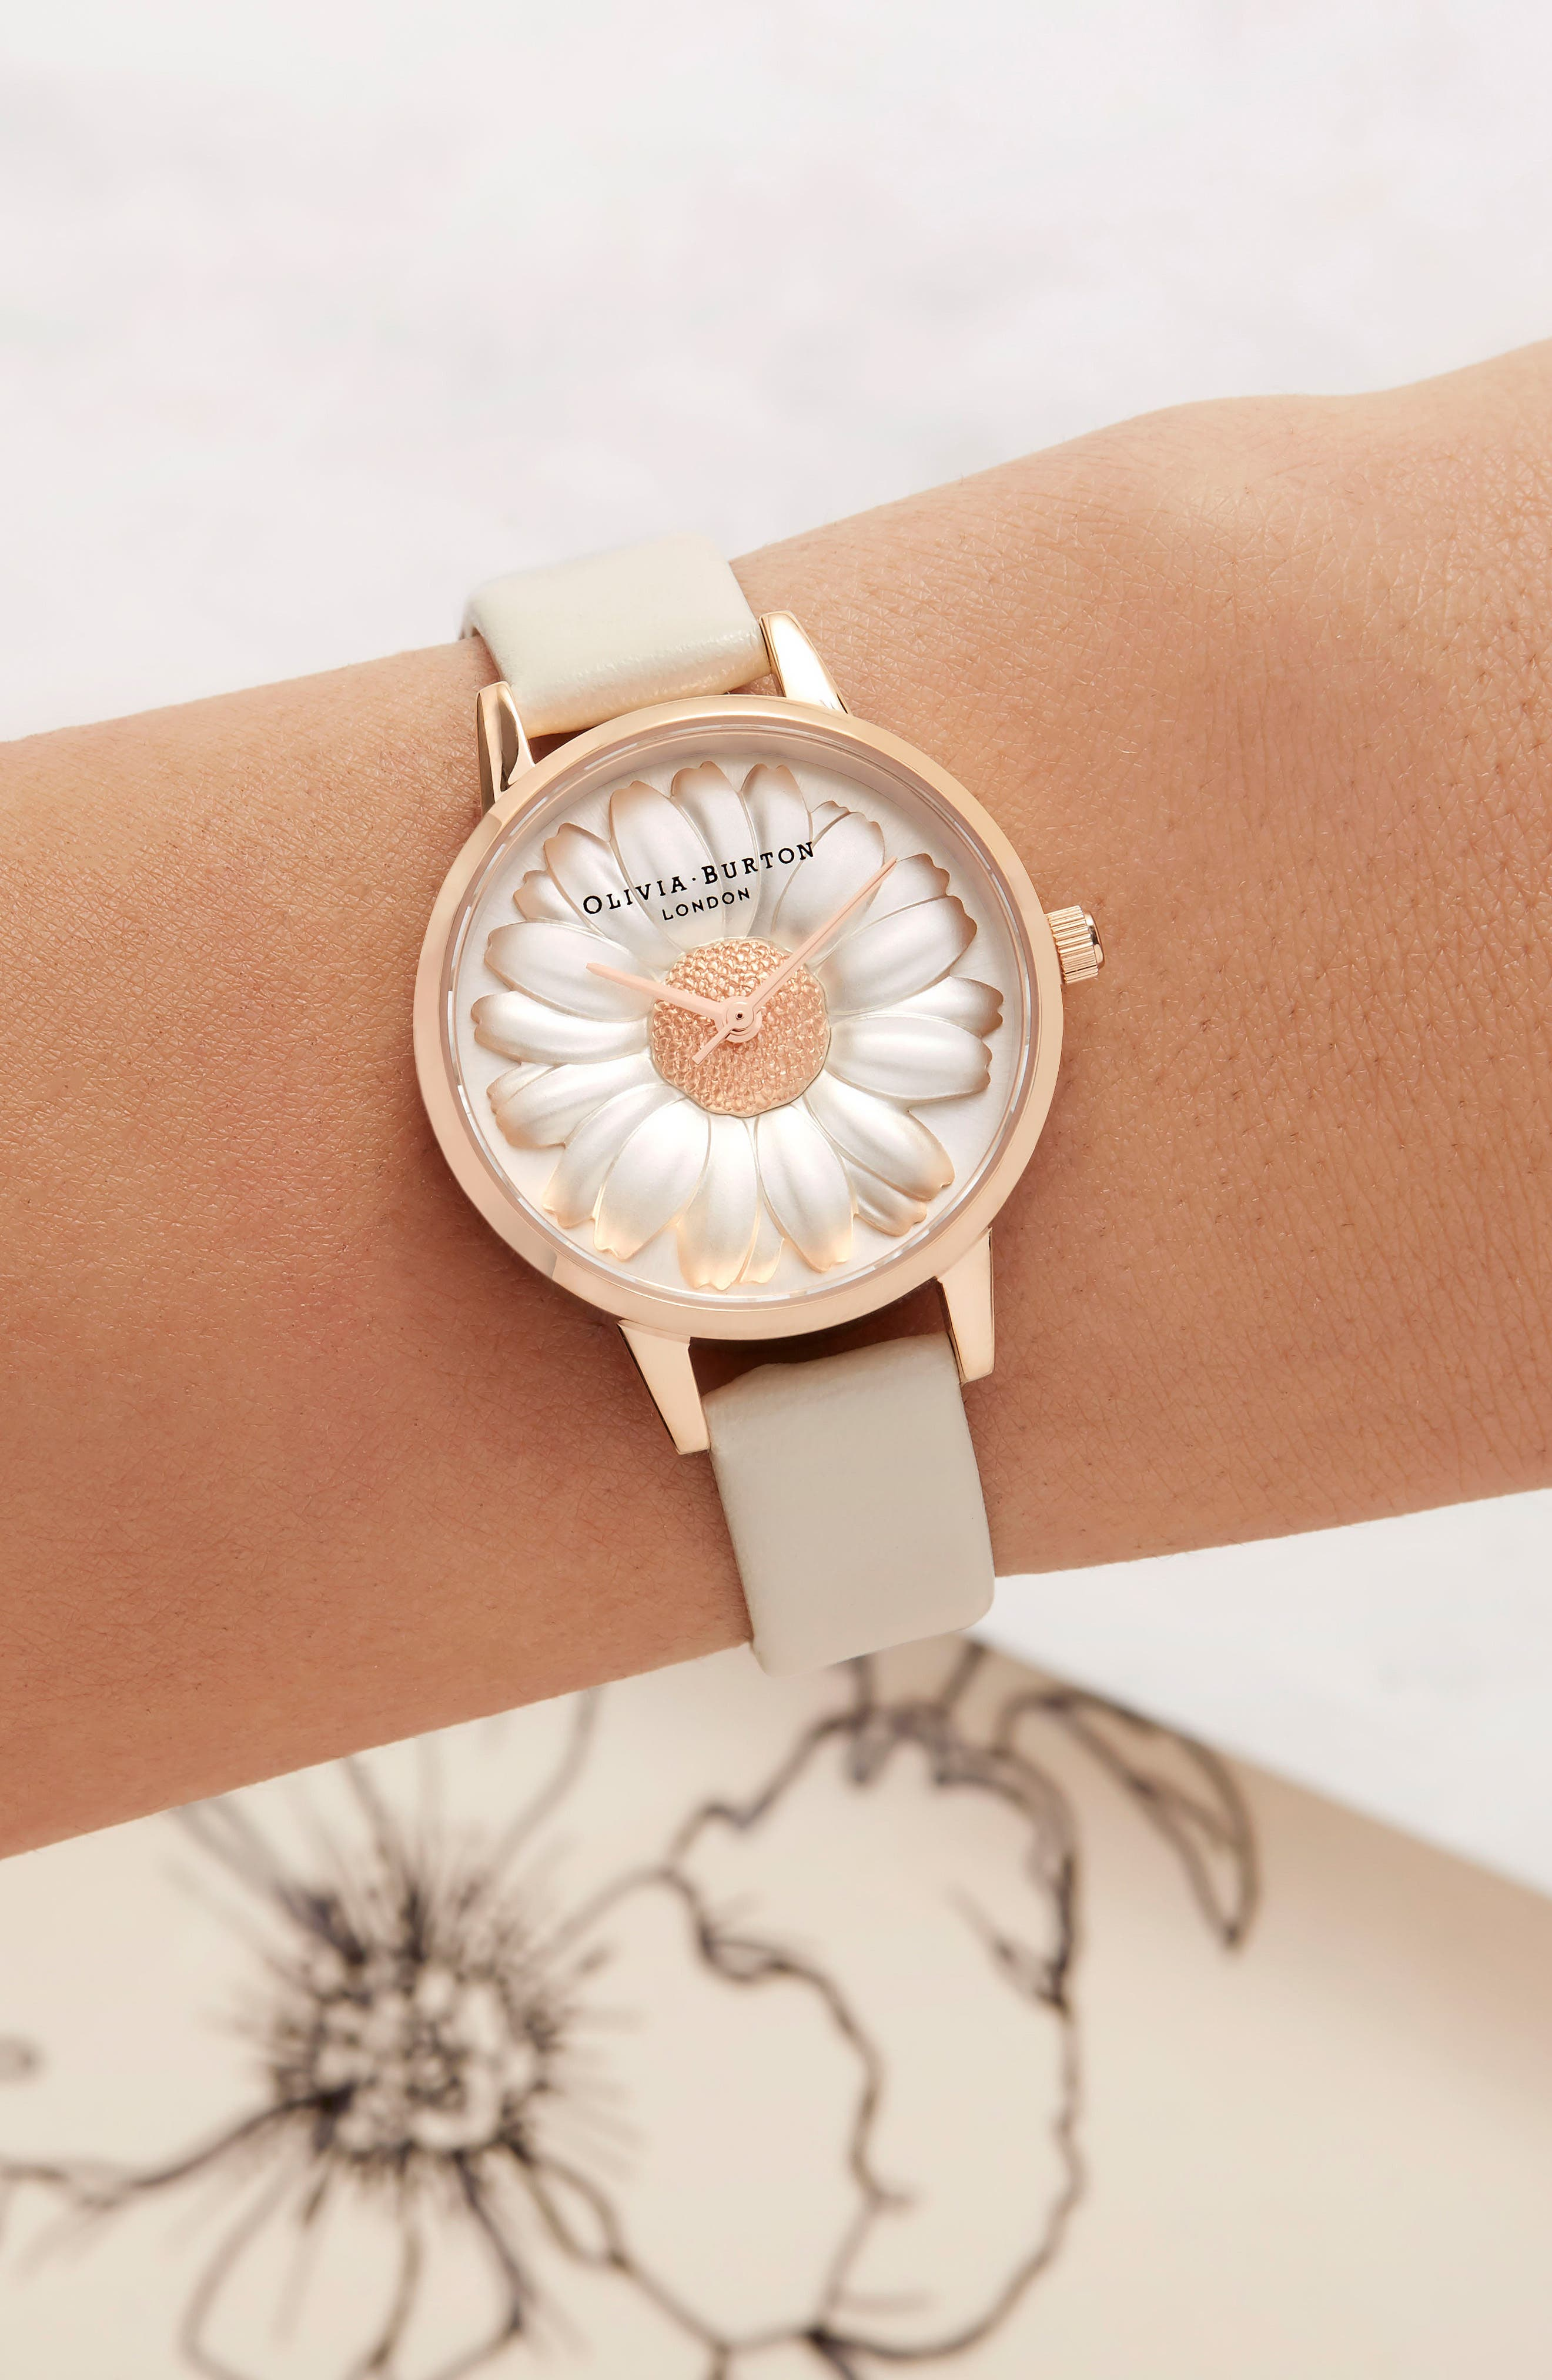 3D Daisey Faux Leather Strap Watch, 30mm,                             Alternate thumbnail 4, color,                             NUDE/ DAISY/ ROSE GOLD